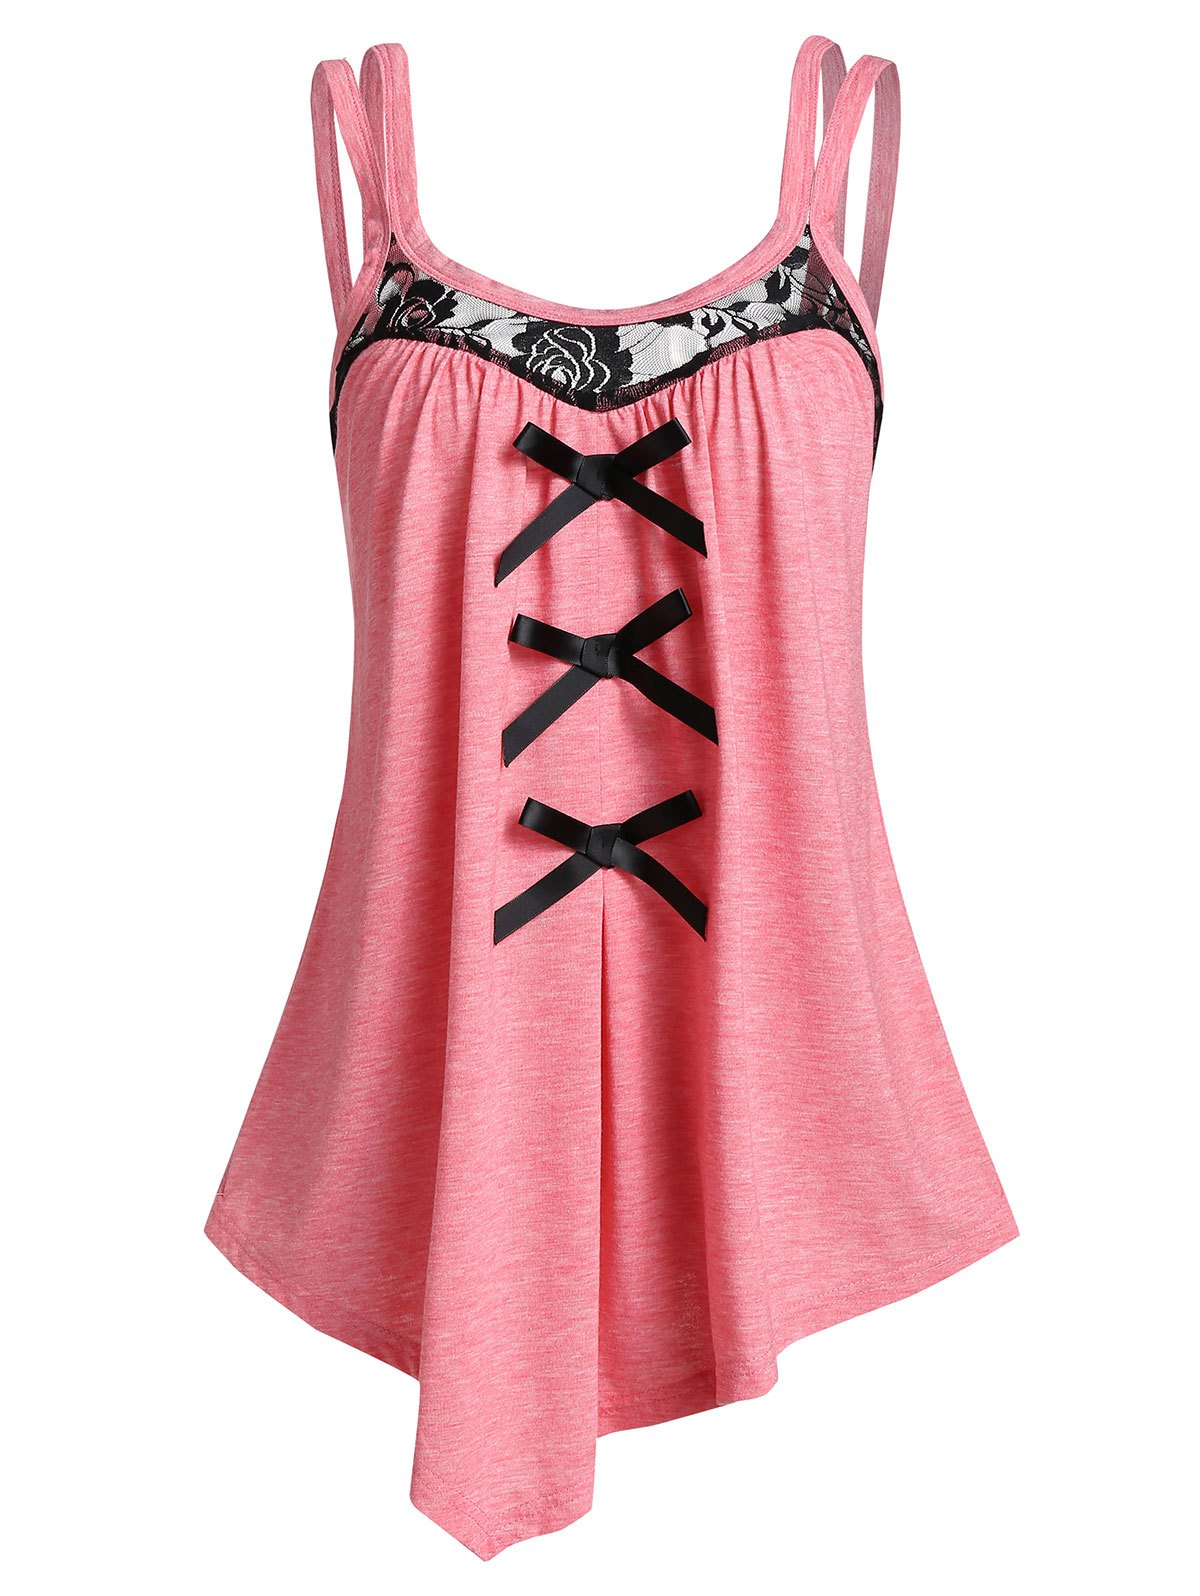 Asymmetrical Bowknot Tank Top